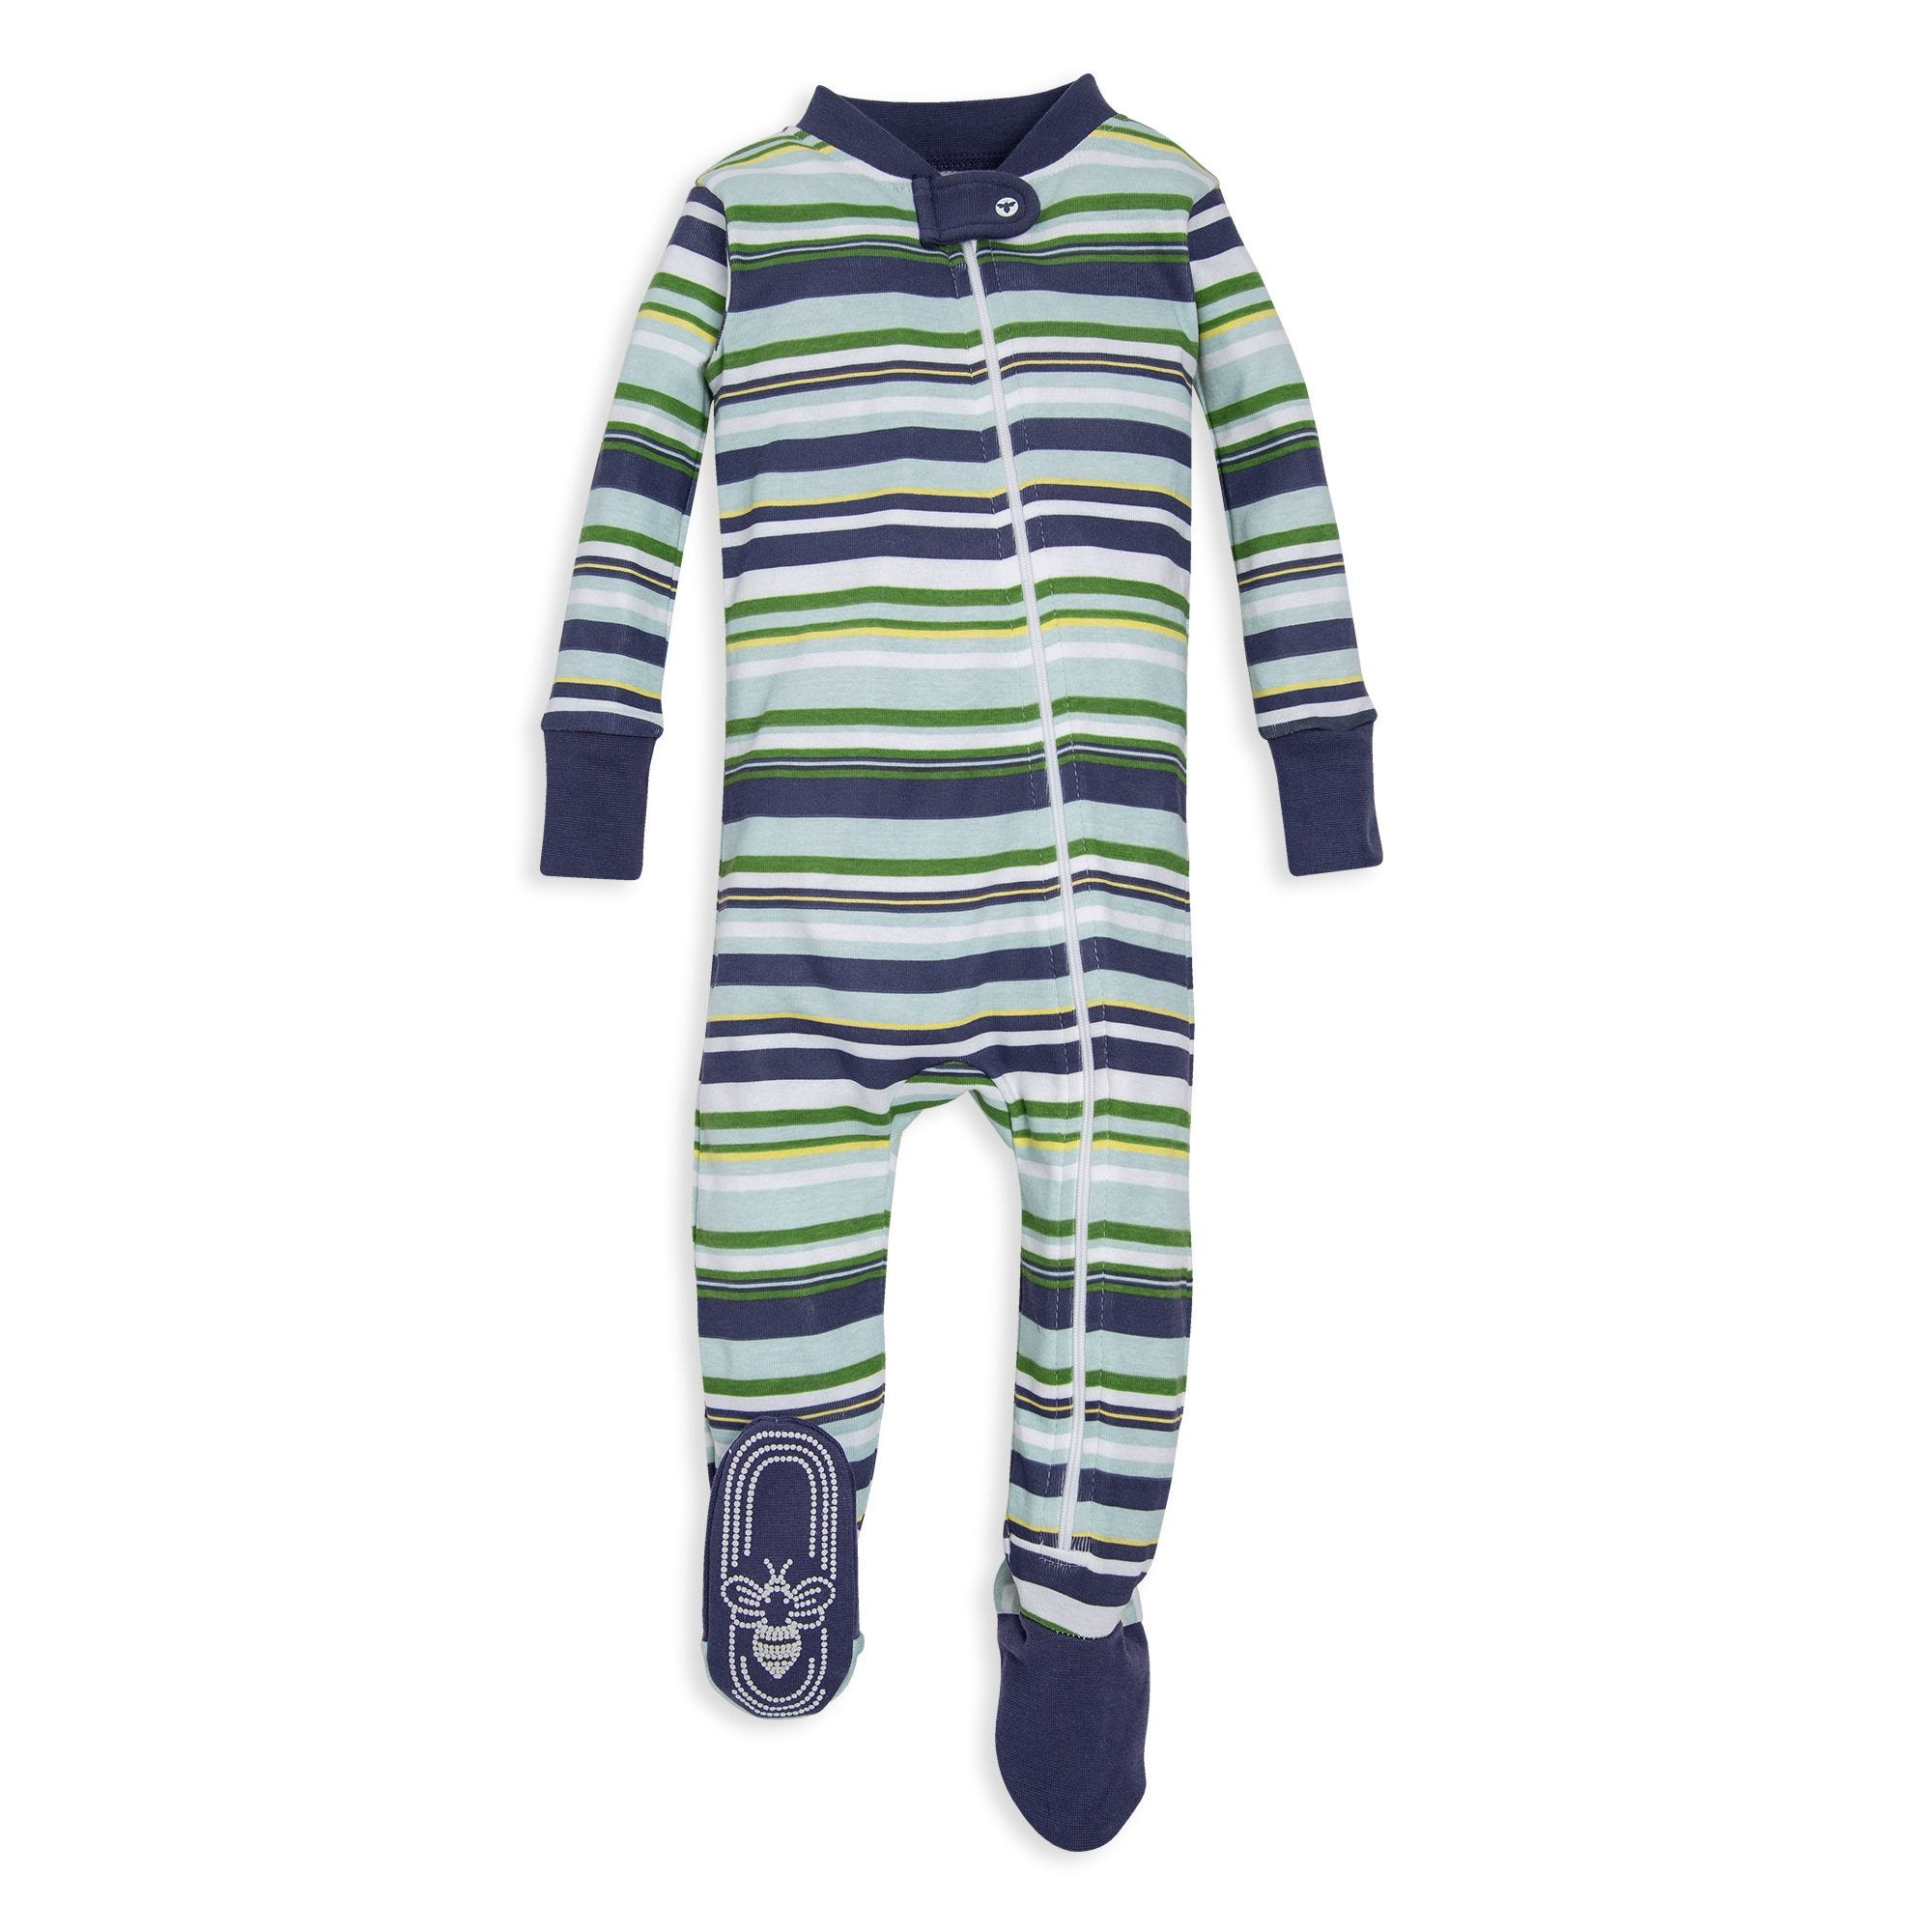 90dd432e1 Vintage Multi-Stripe Organic Baby Zip Up Footed Pajamas Indigo